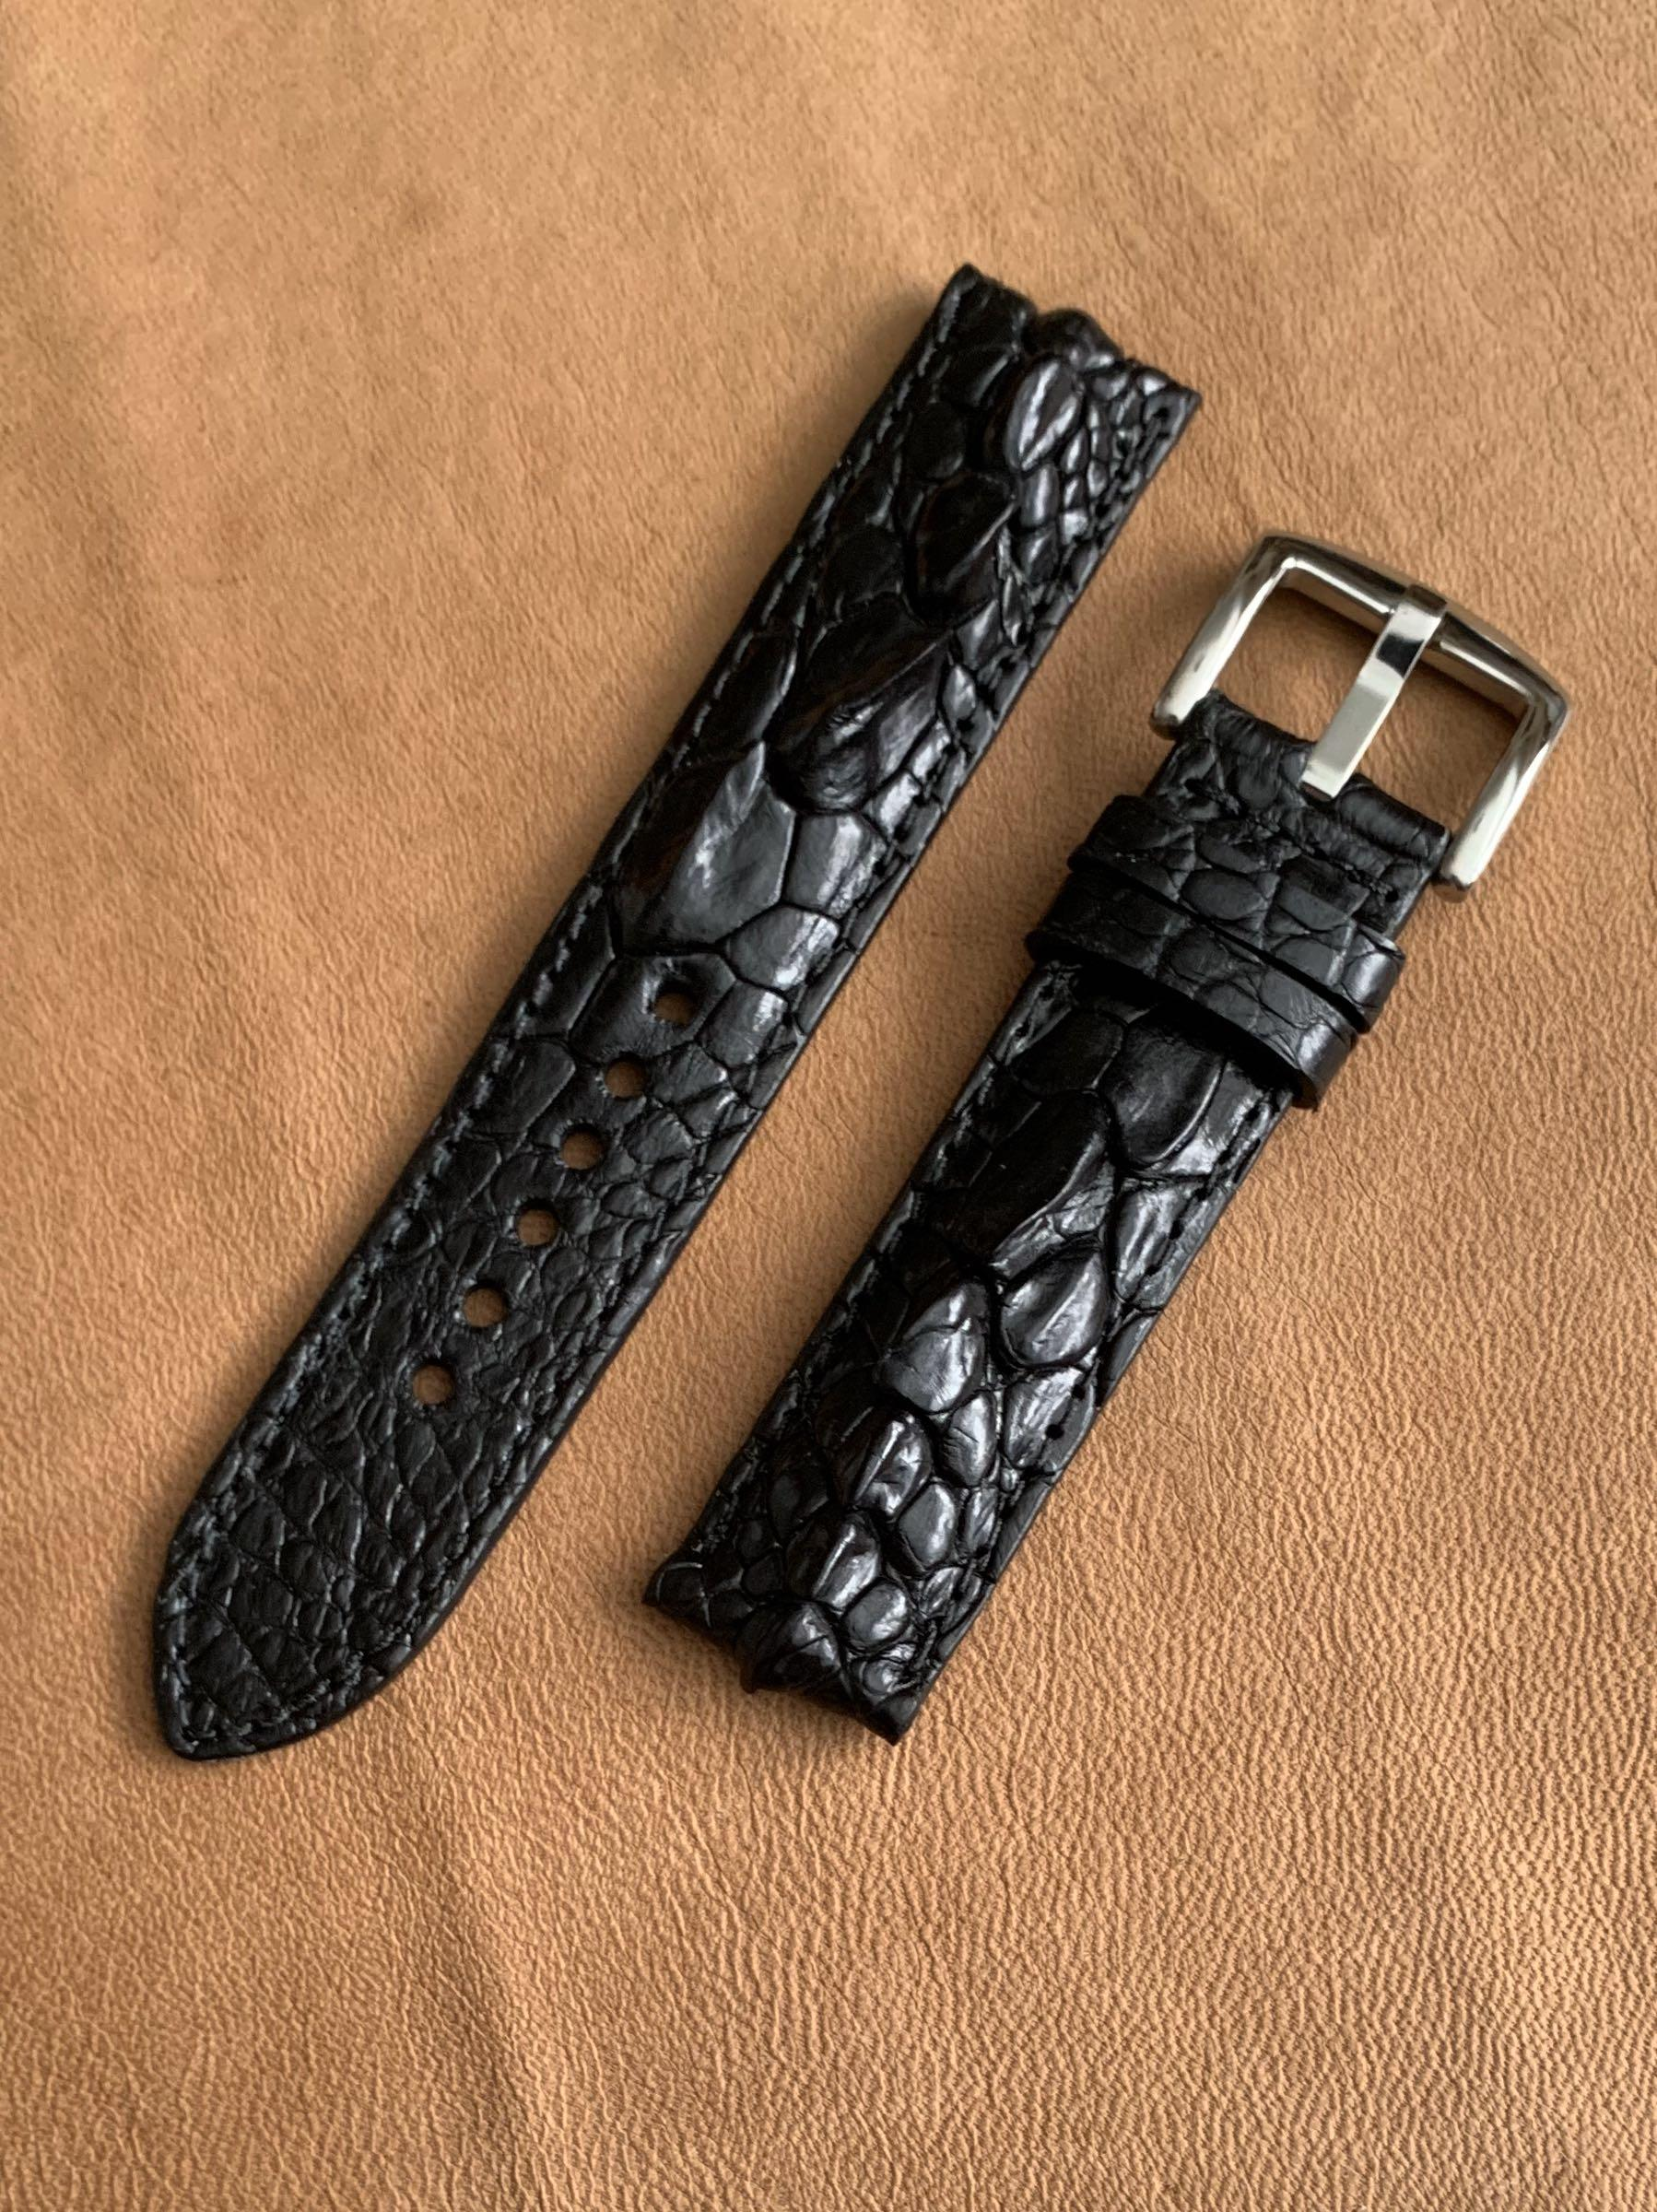 20mm/20mm Black Genuine Hornback Alligator 🐊  Crocodile Watch Strap  (scarce and gorgeous, one of a kind 👍🏻😊) Standard Length- L:125mm S:75mm  [first hole is 5.9cm away from lug, suitable for big wrists]